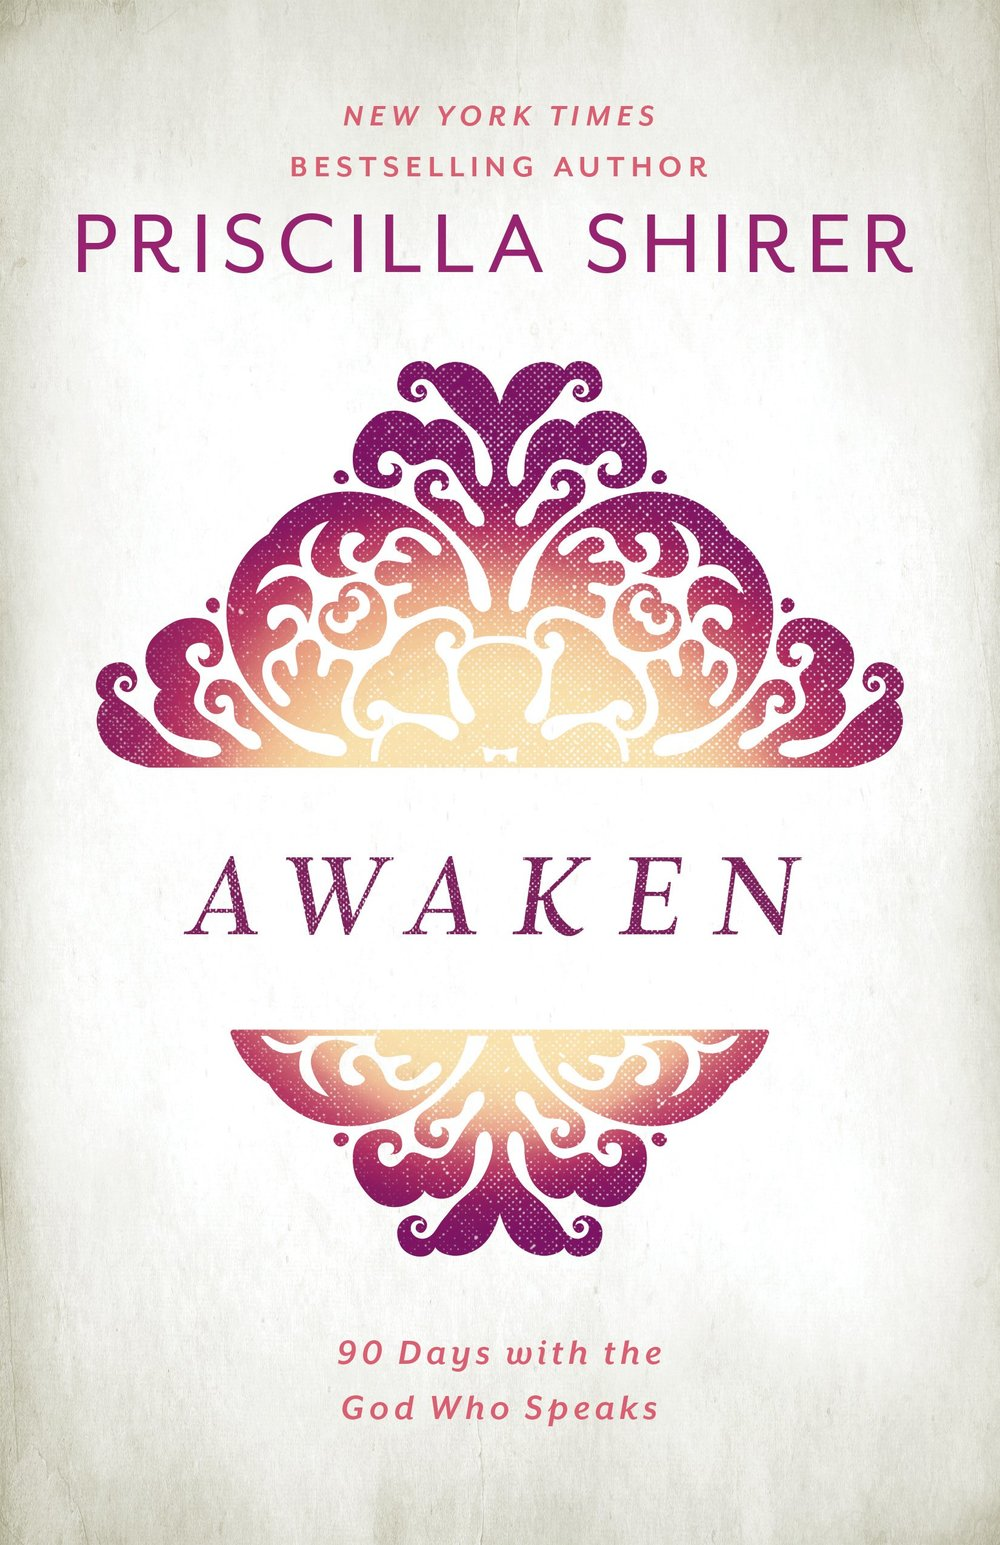 Awaken by Priscilla Shirer